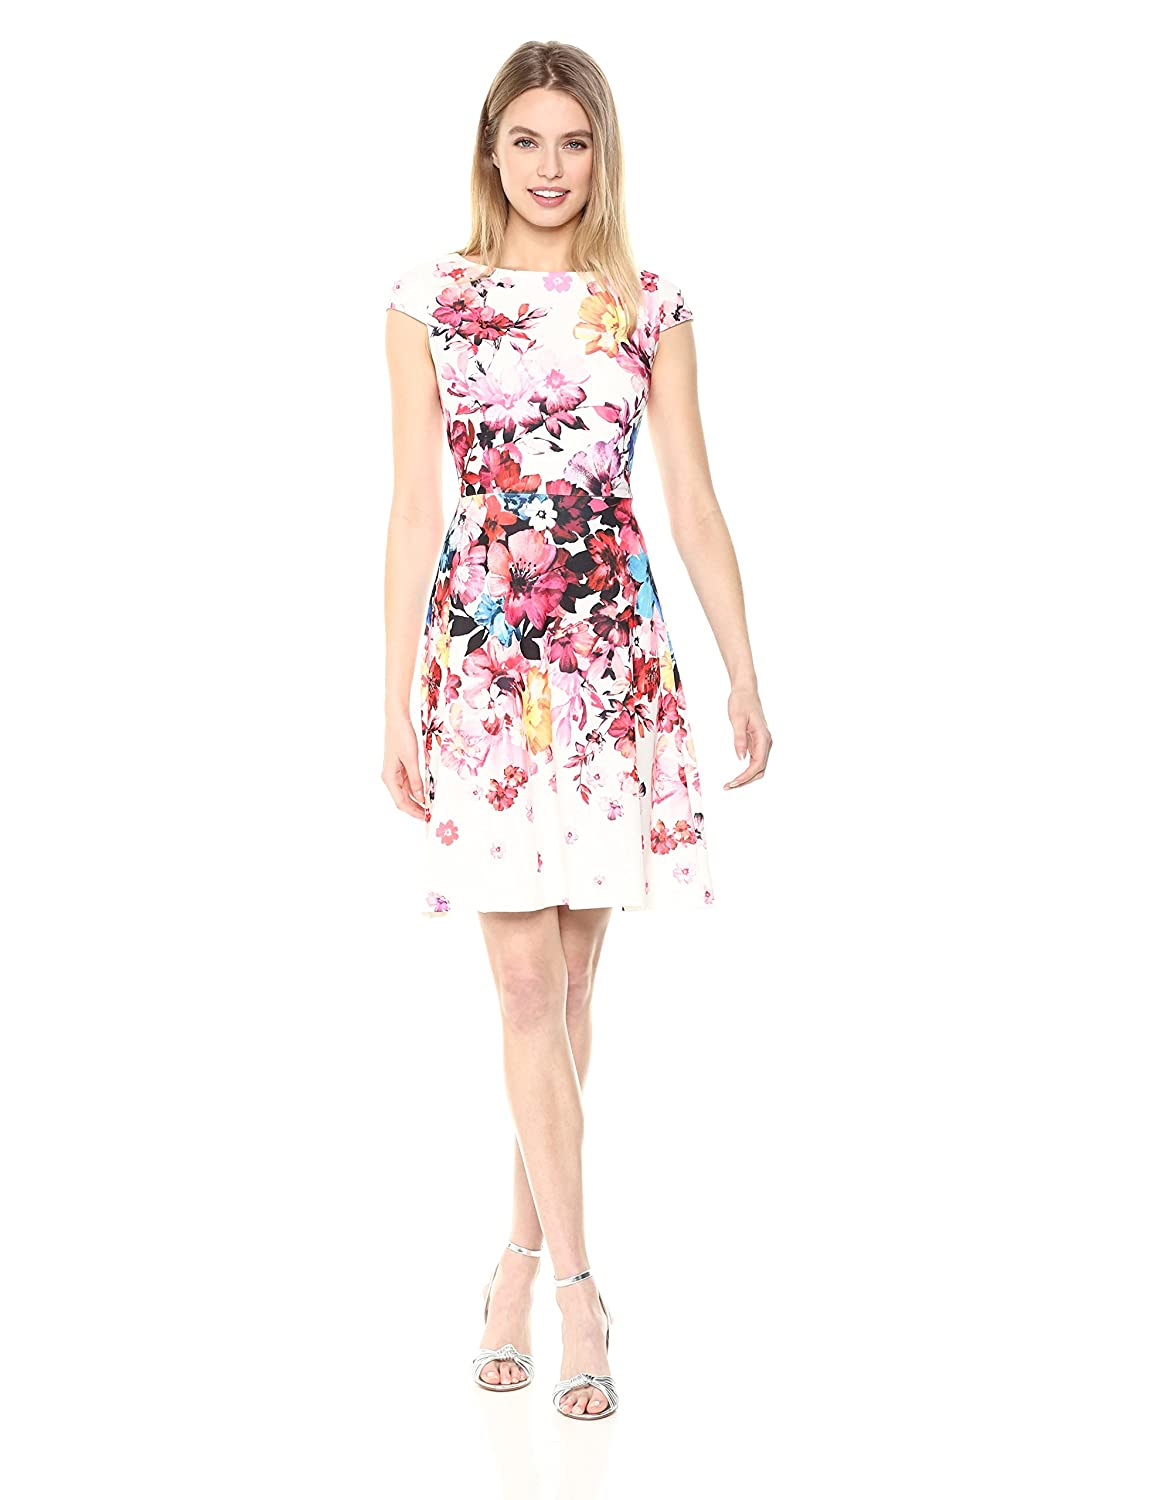 d4b407f90ed47 Top1  Adrianna Papell Women s Spring in Bloom Printed Scuba Fit and Flare  Dress. Wholesale ...